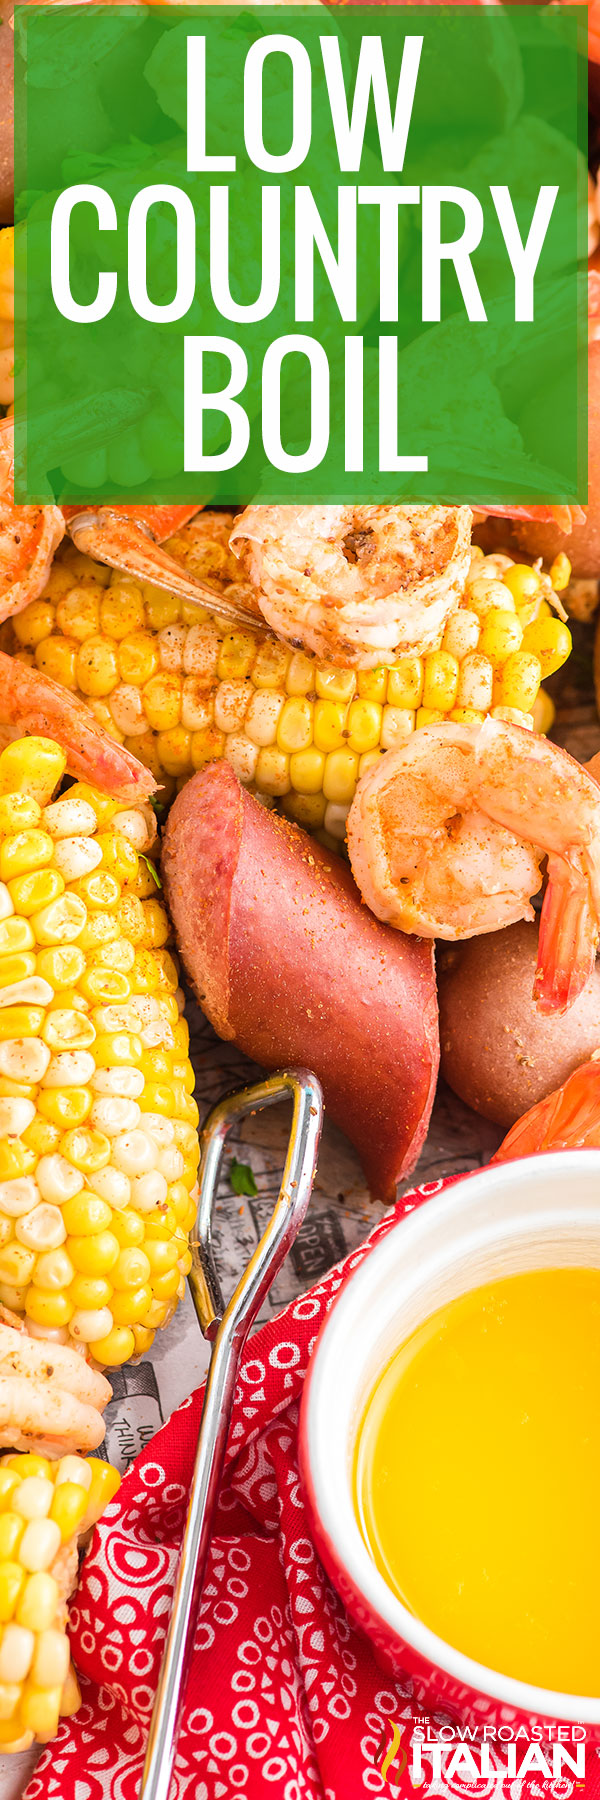 Low Country Boil spread